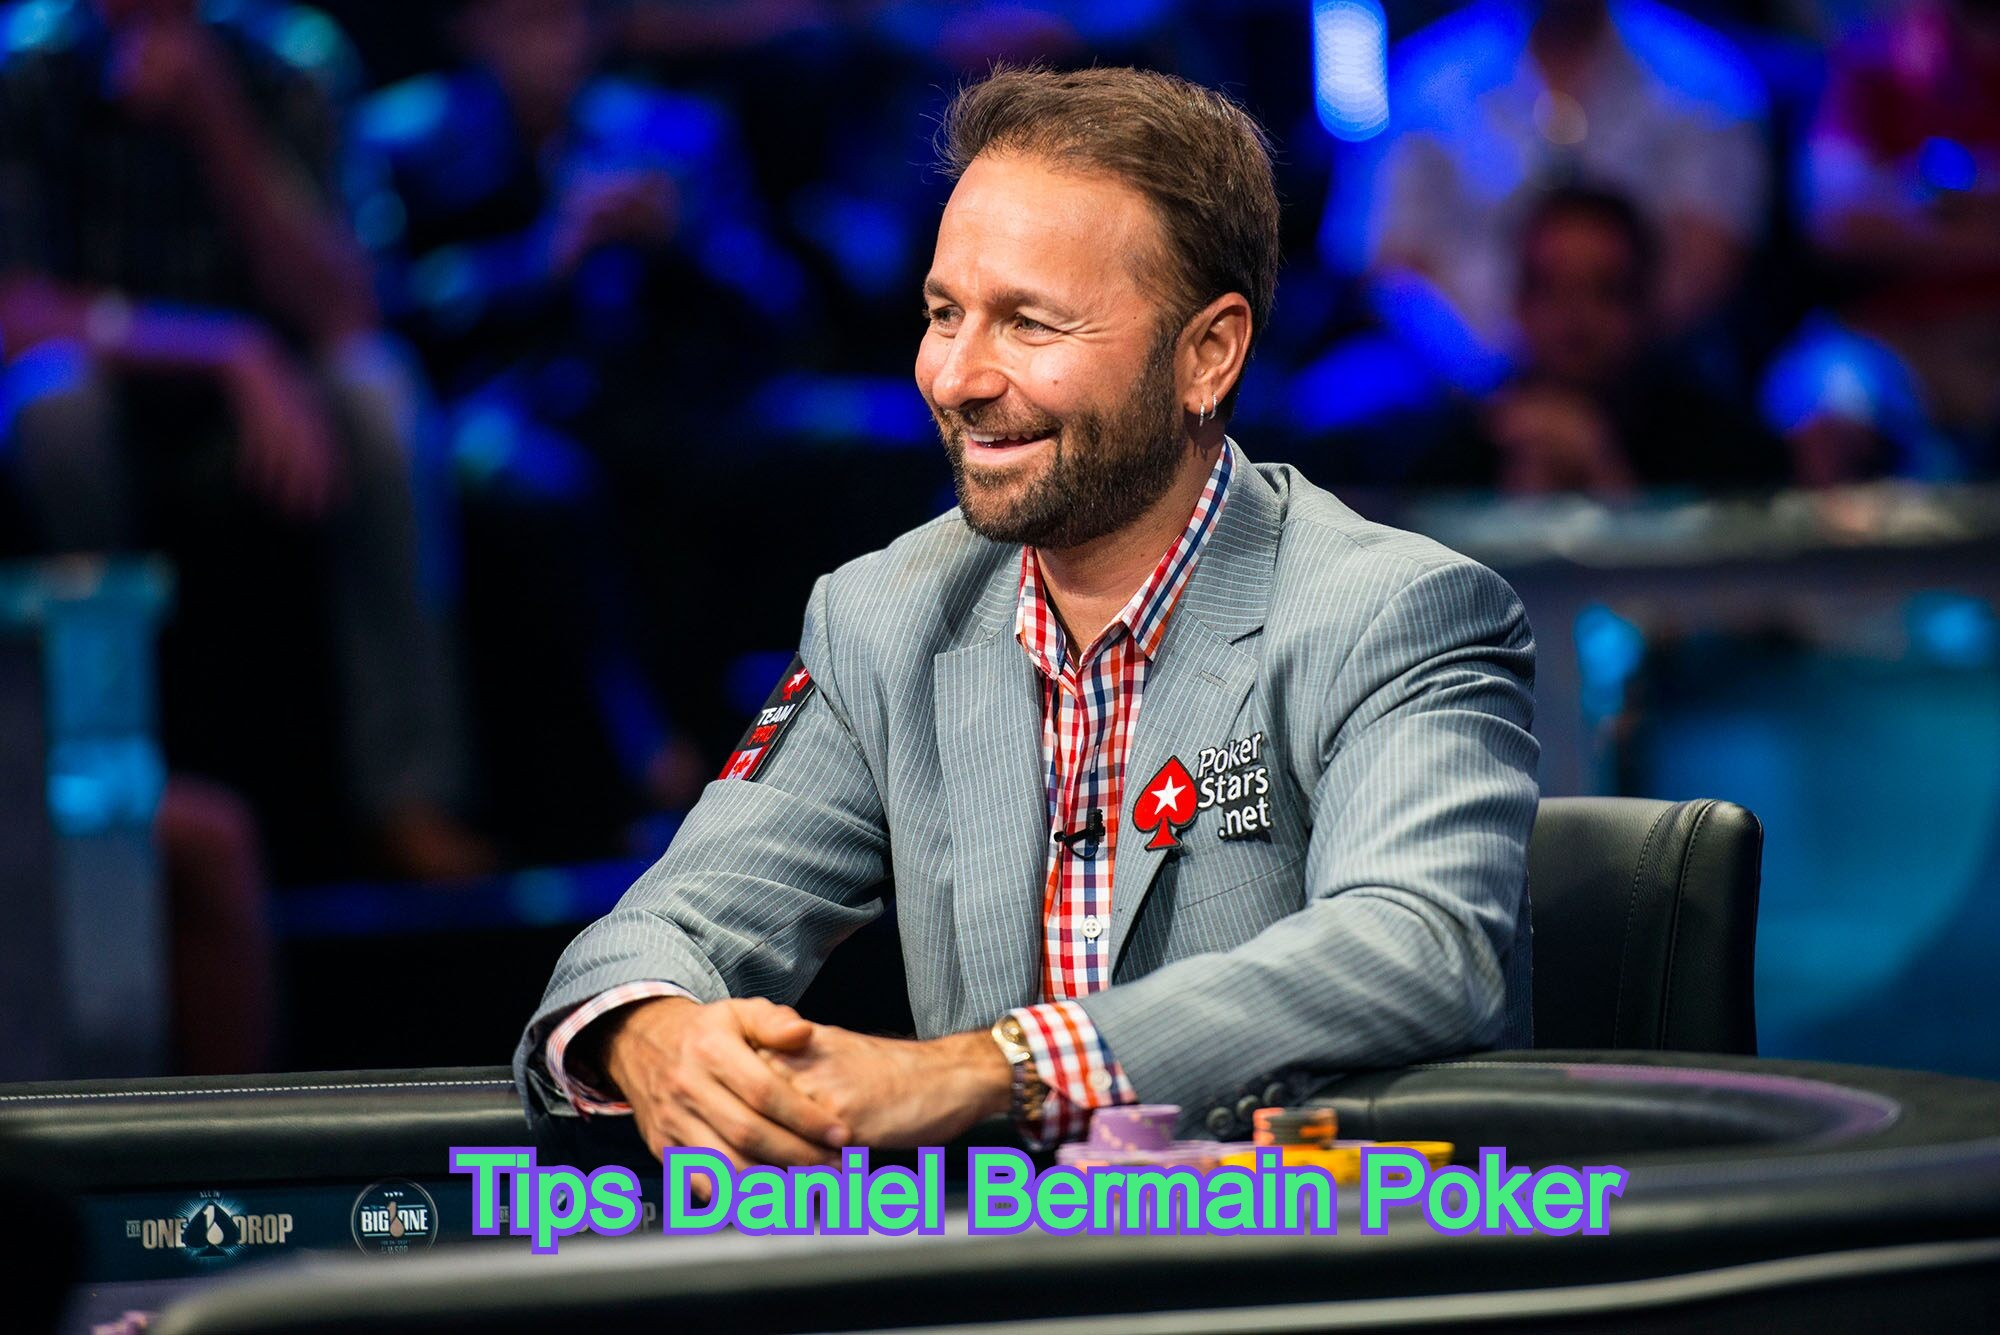 Tips Daniel Bermain Poker